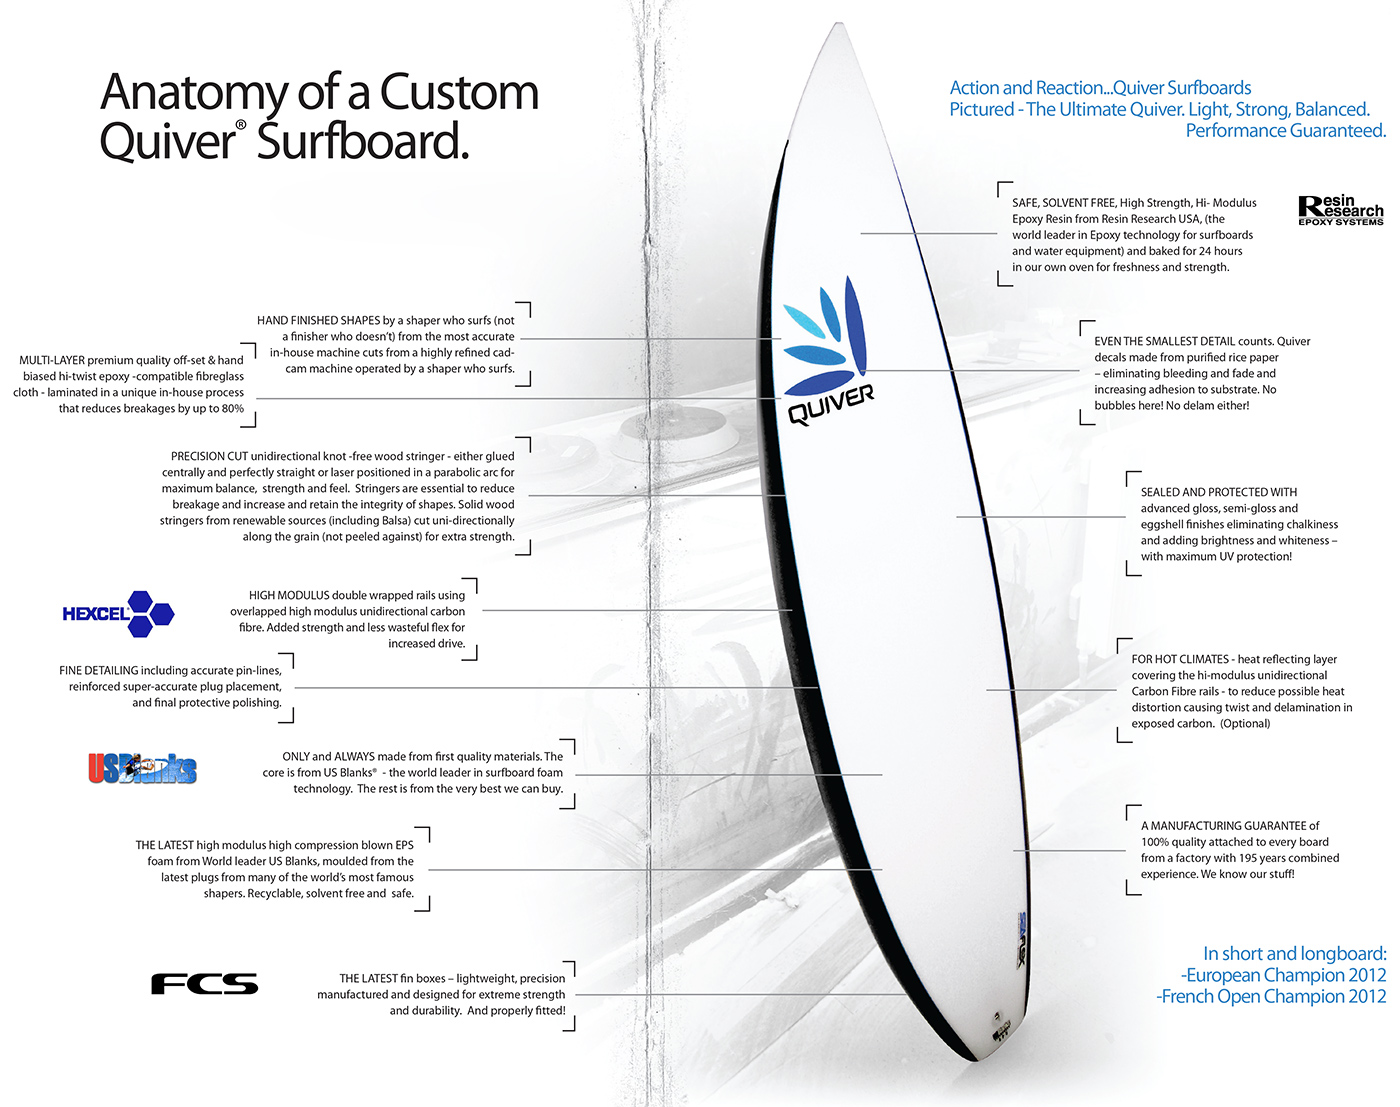 Anatomy of a Custom Quiver Surfboard